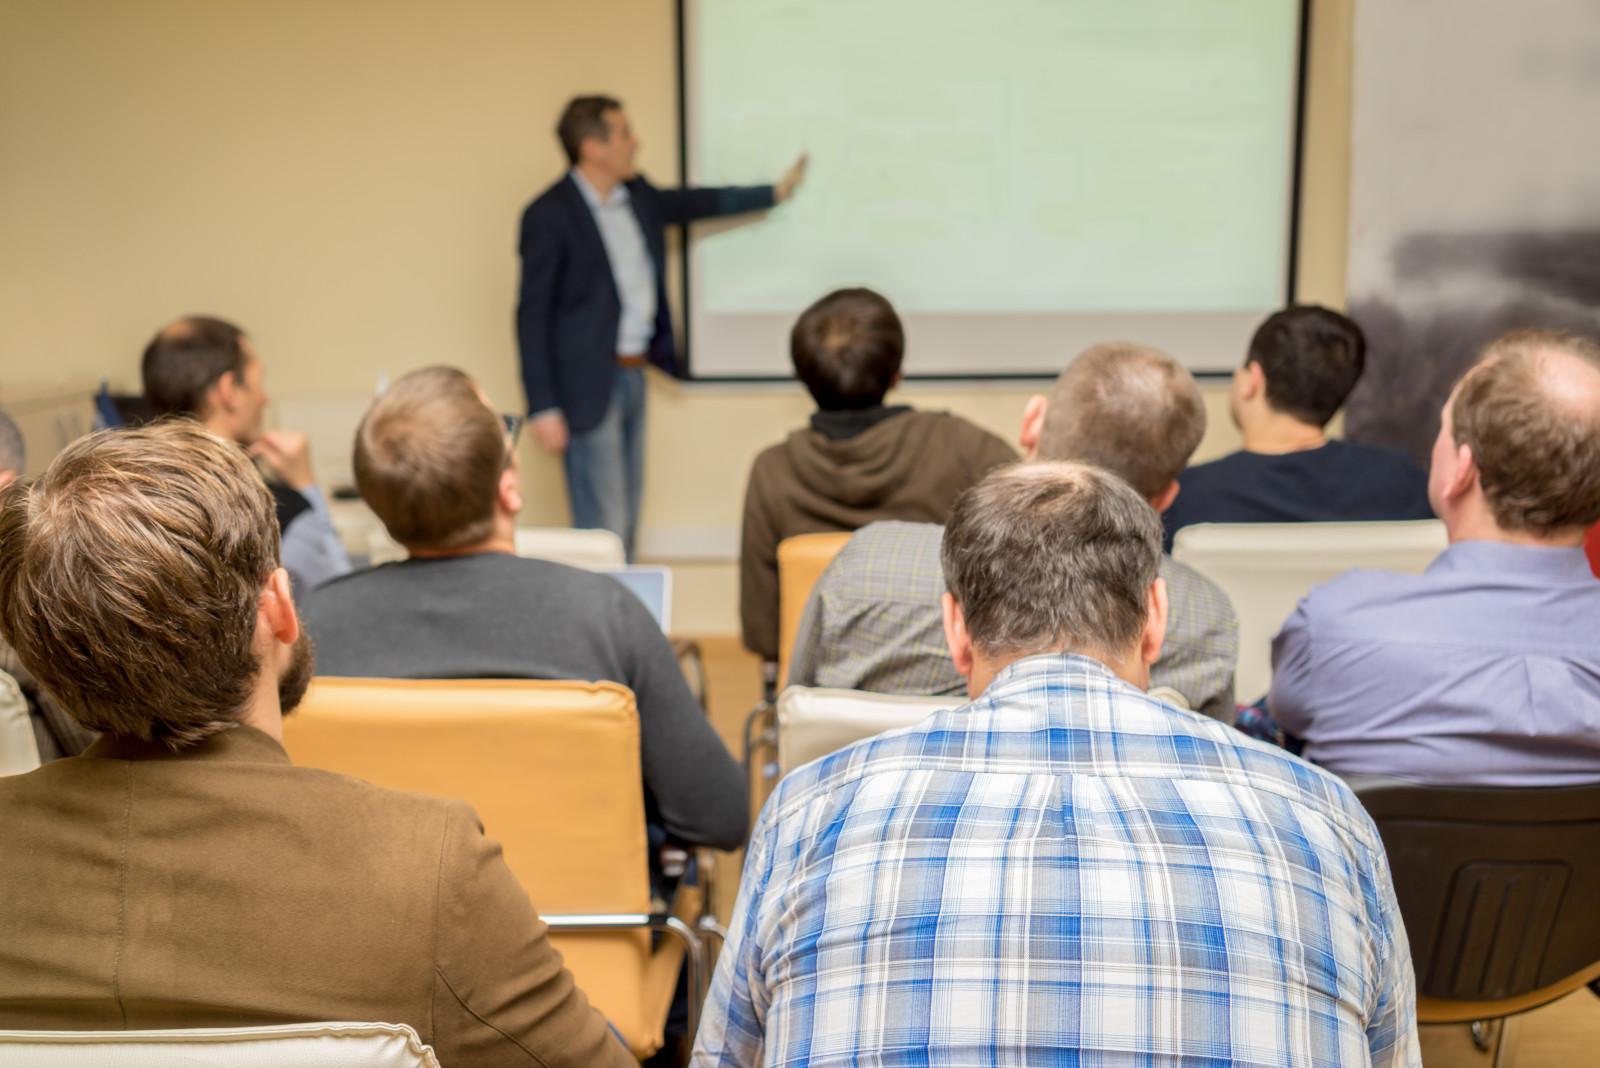 How to Handle Interruptions During Your Training Presentation